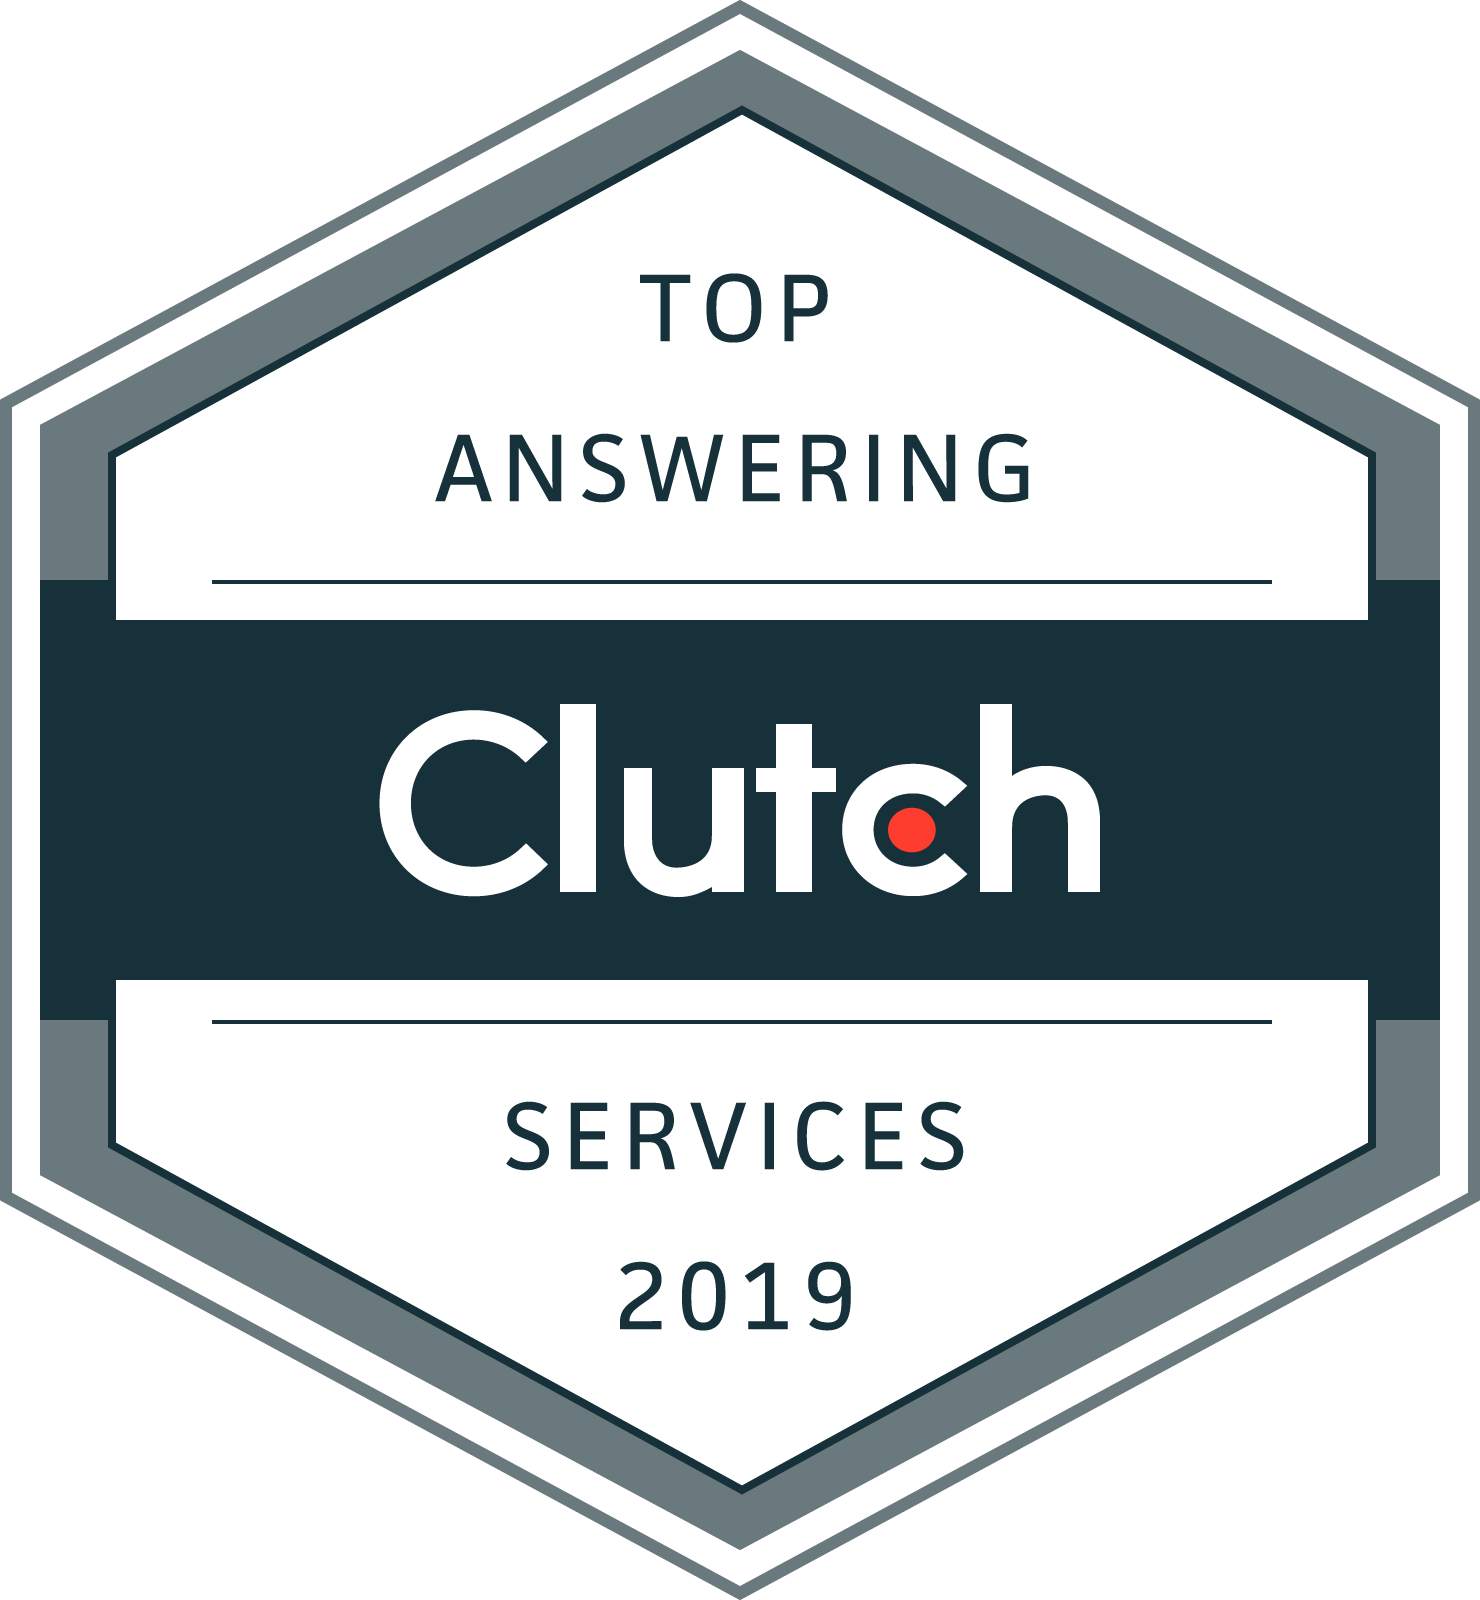 Clutch - Top answering services 2019